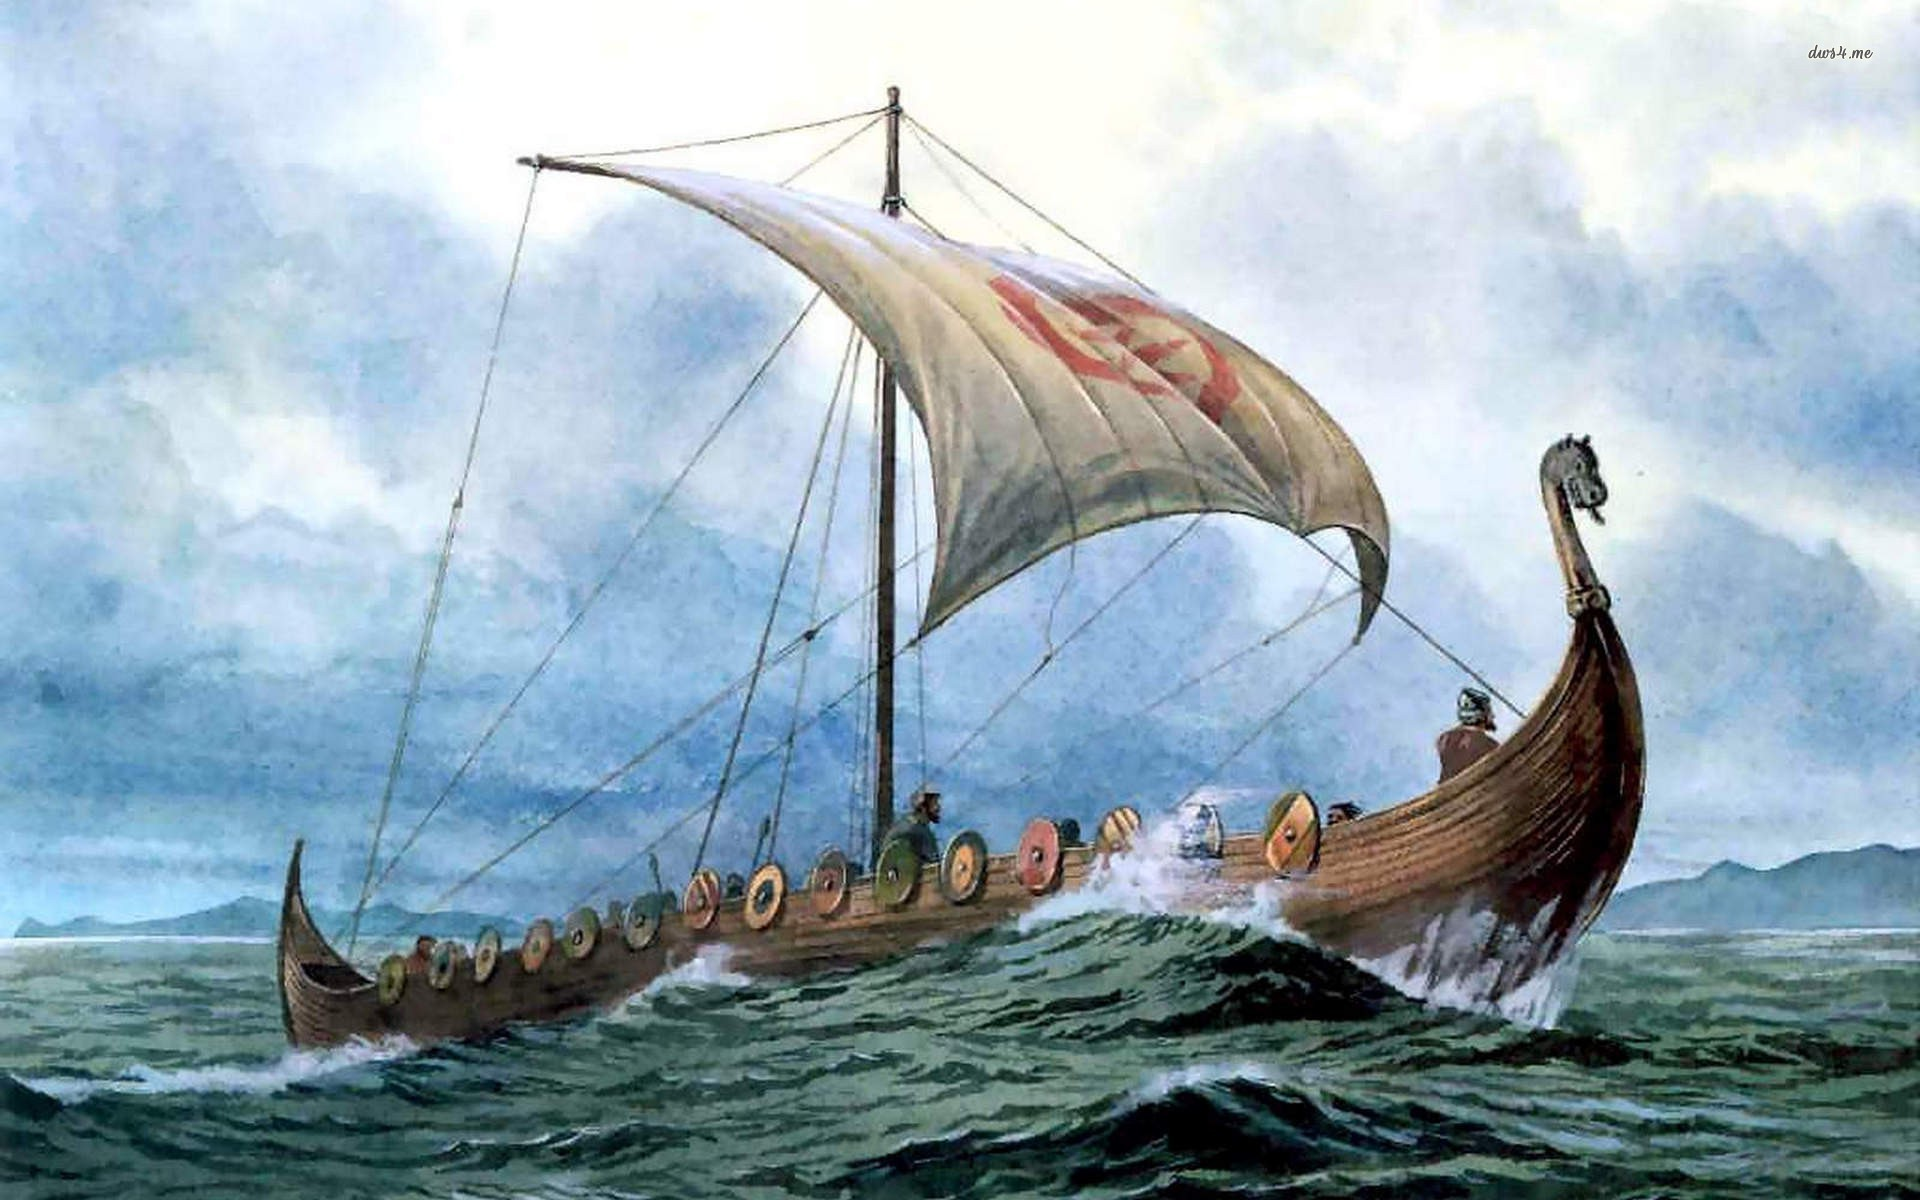 5633-viking-ship-wallpapers-hd-wallpaper